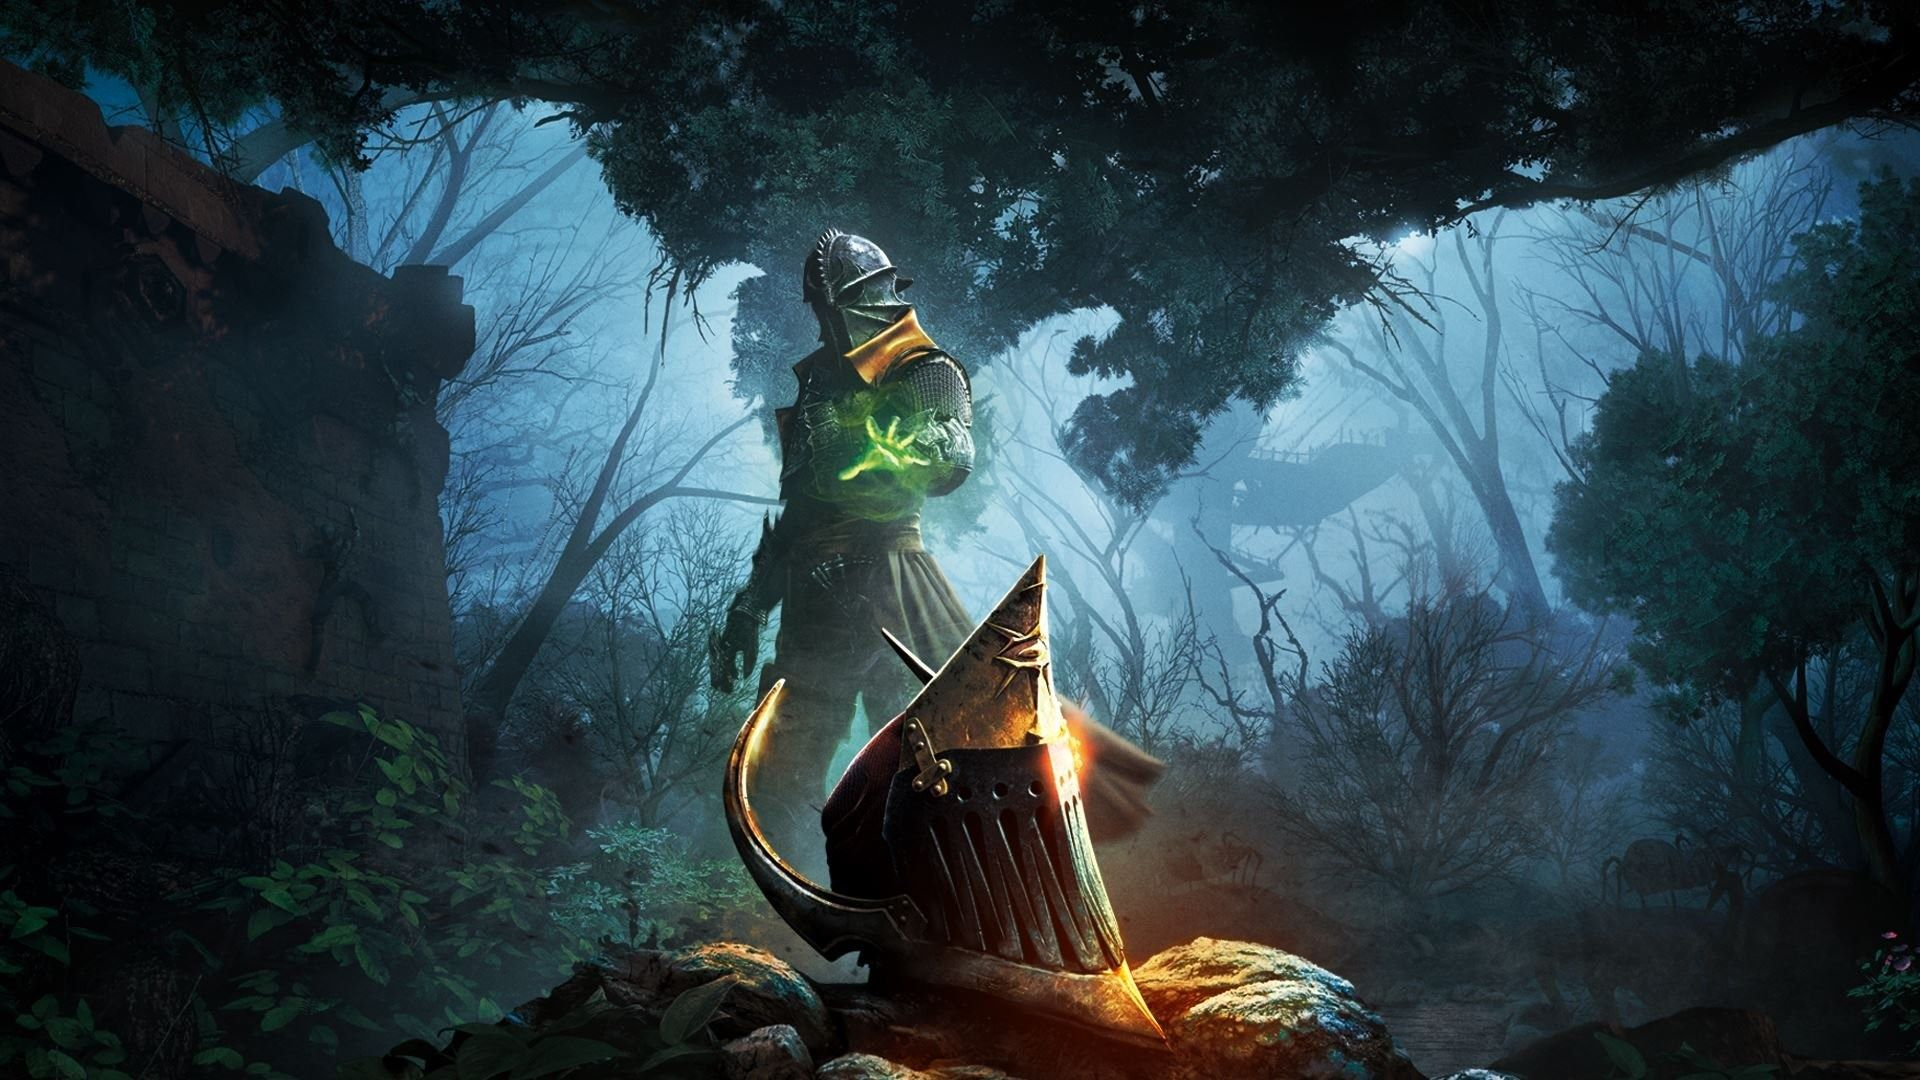 1527895 Hd Widescreen Wallpapers Dragon Age Inquisition